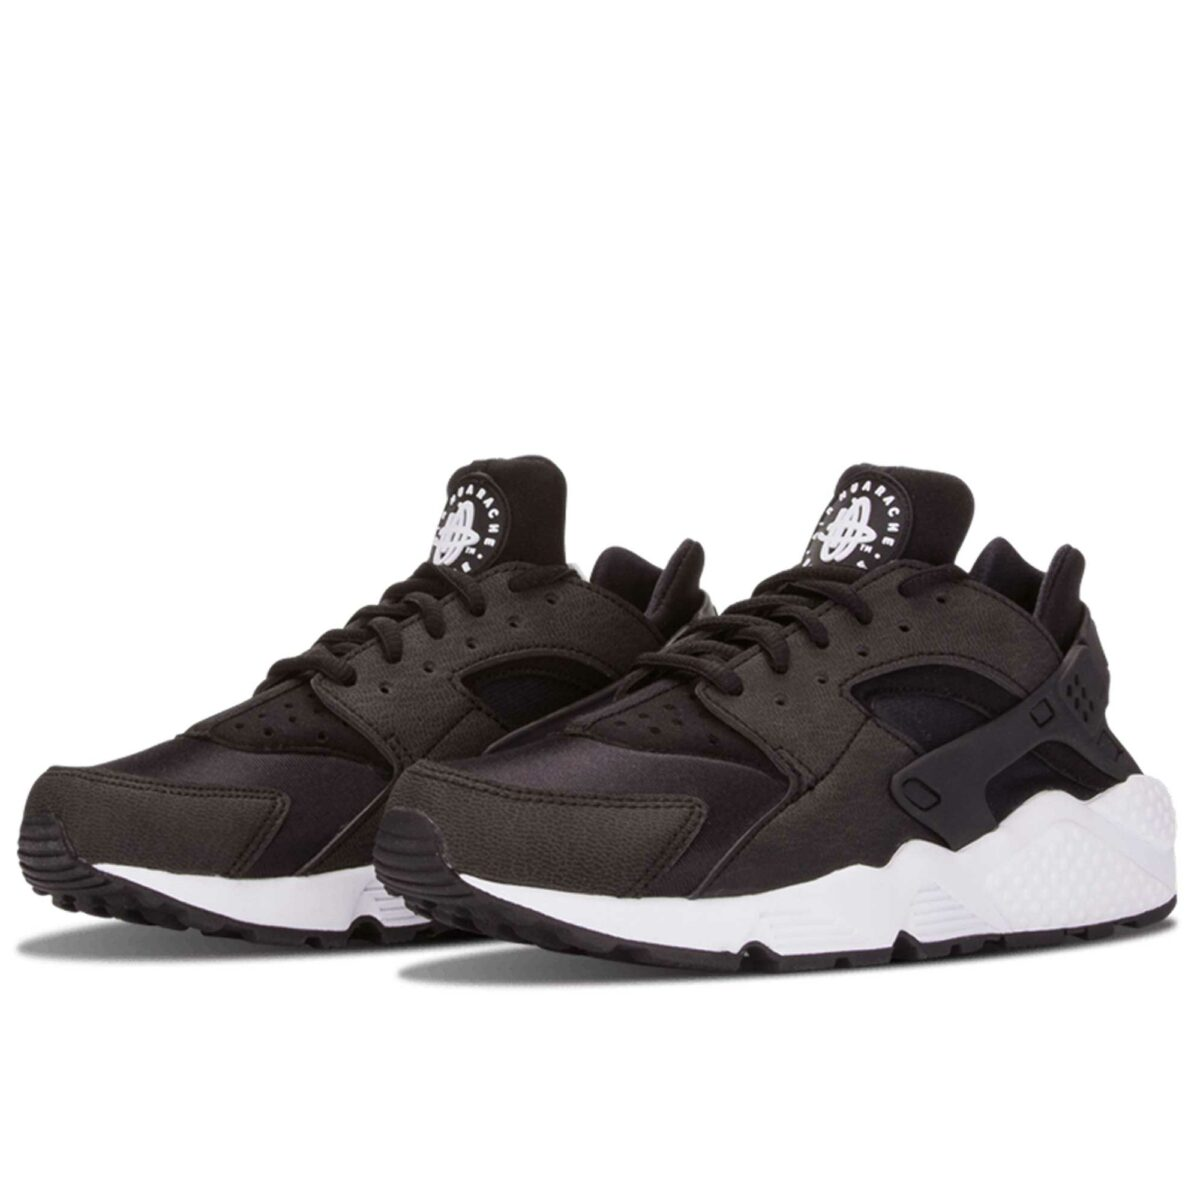 nike air huarache ultra black white 819685_001 купить